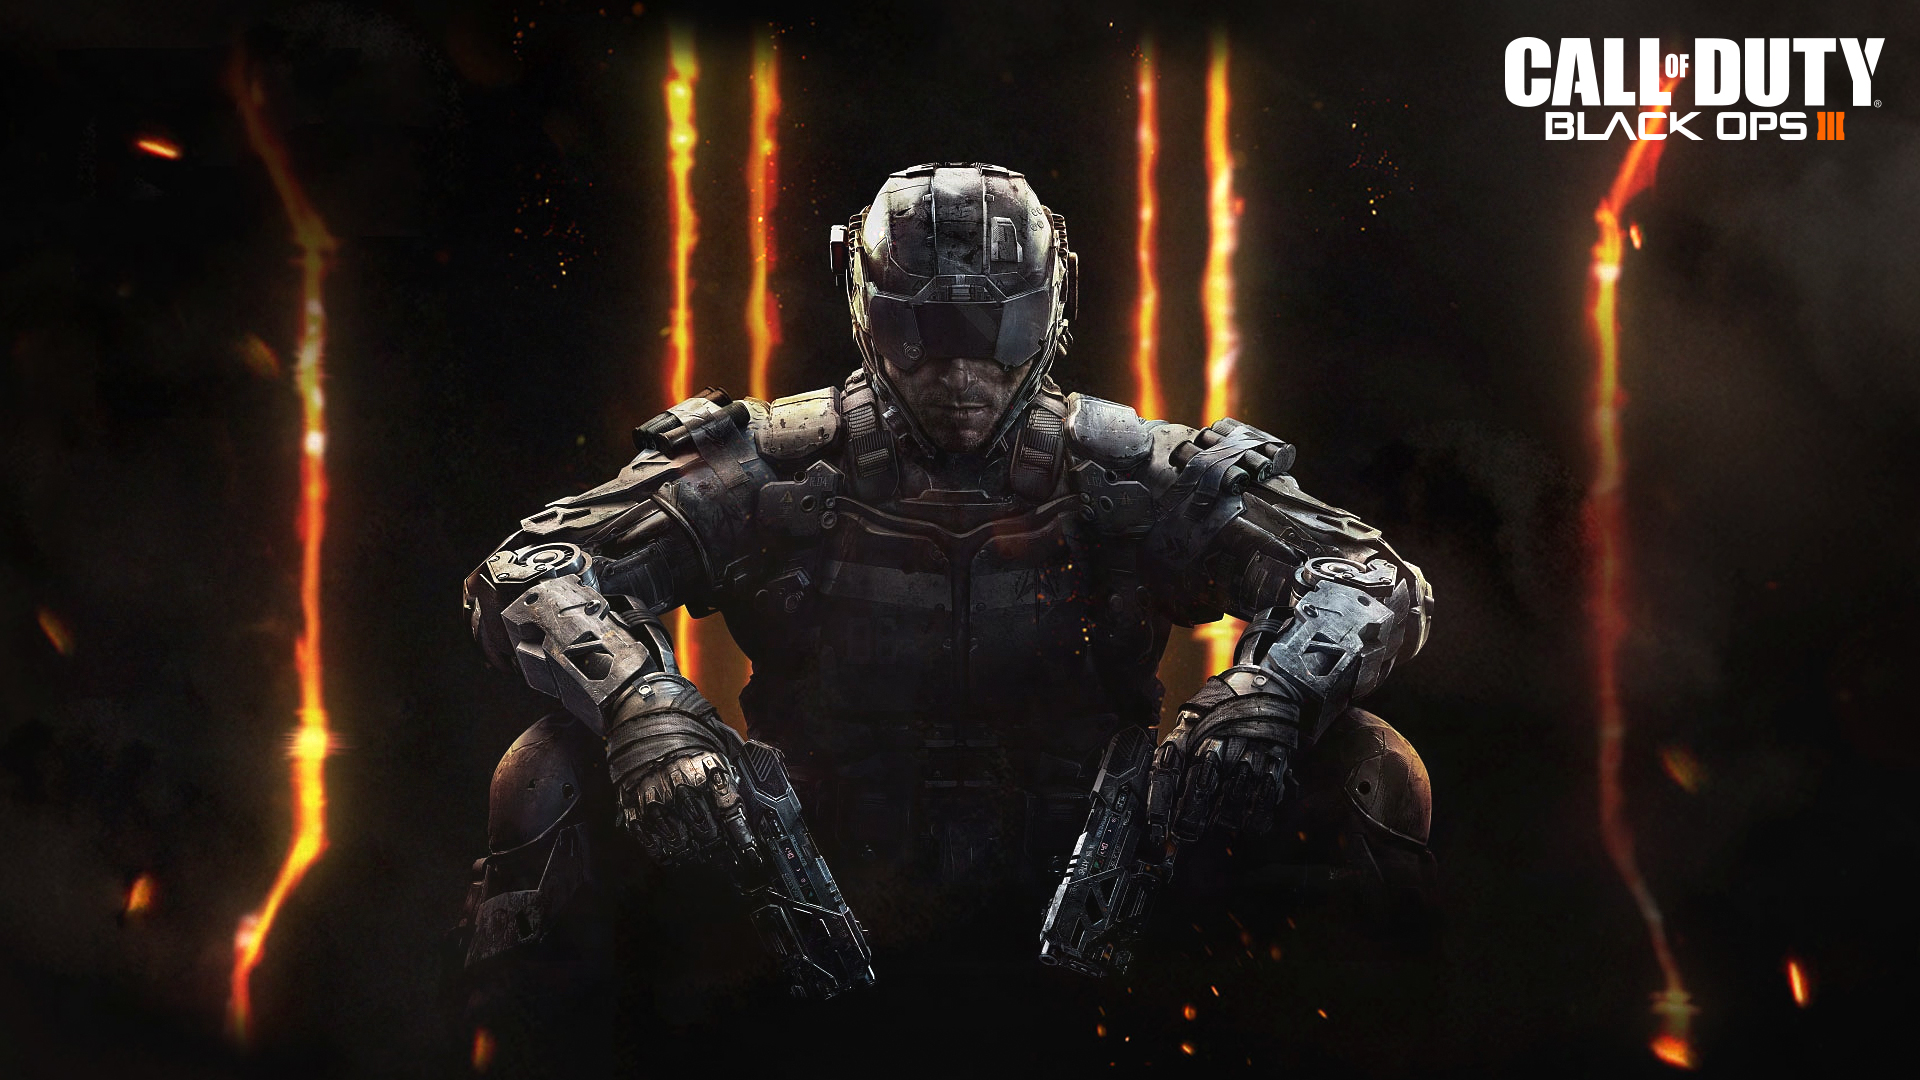 Download Black Ops 3 Wallpaper HD We provide the best collection of 1920x1080